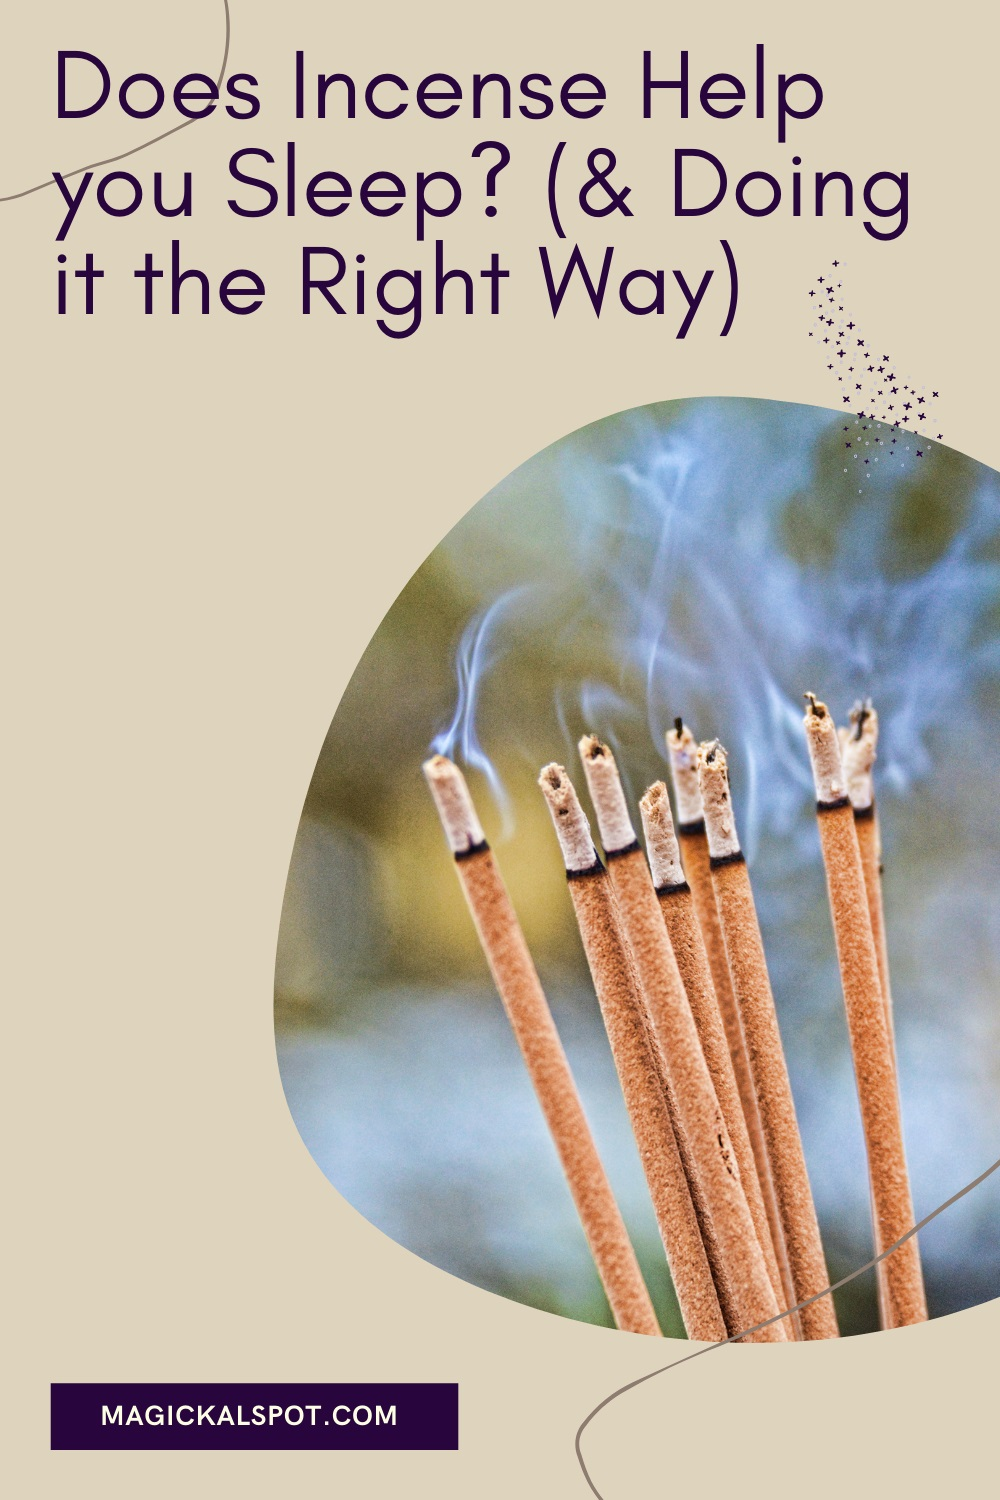 Does Incense Help you Sleep by Magickal Spot